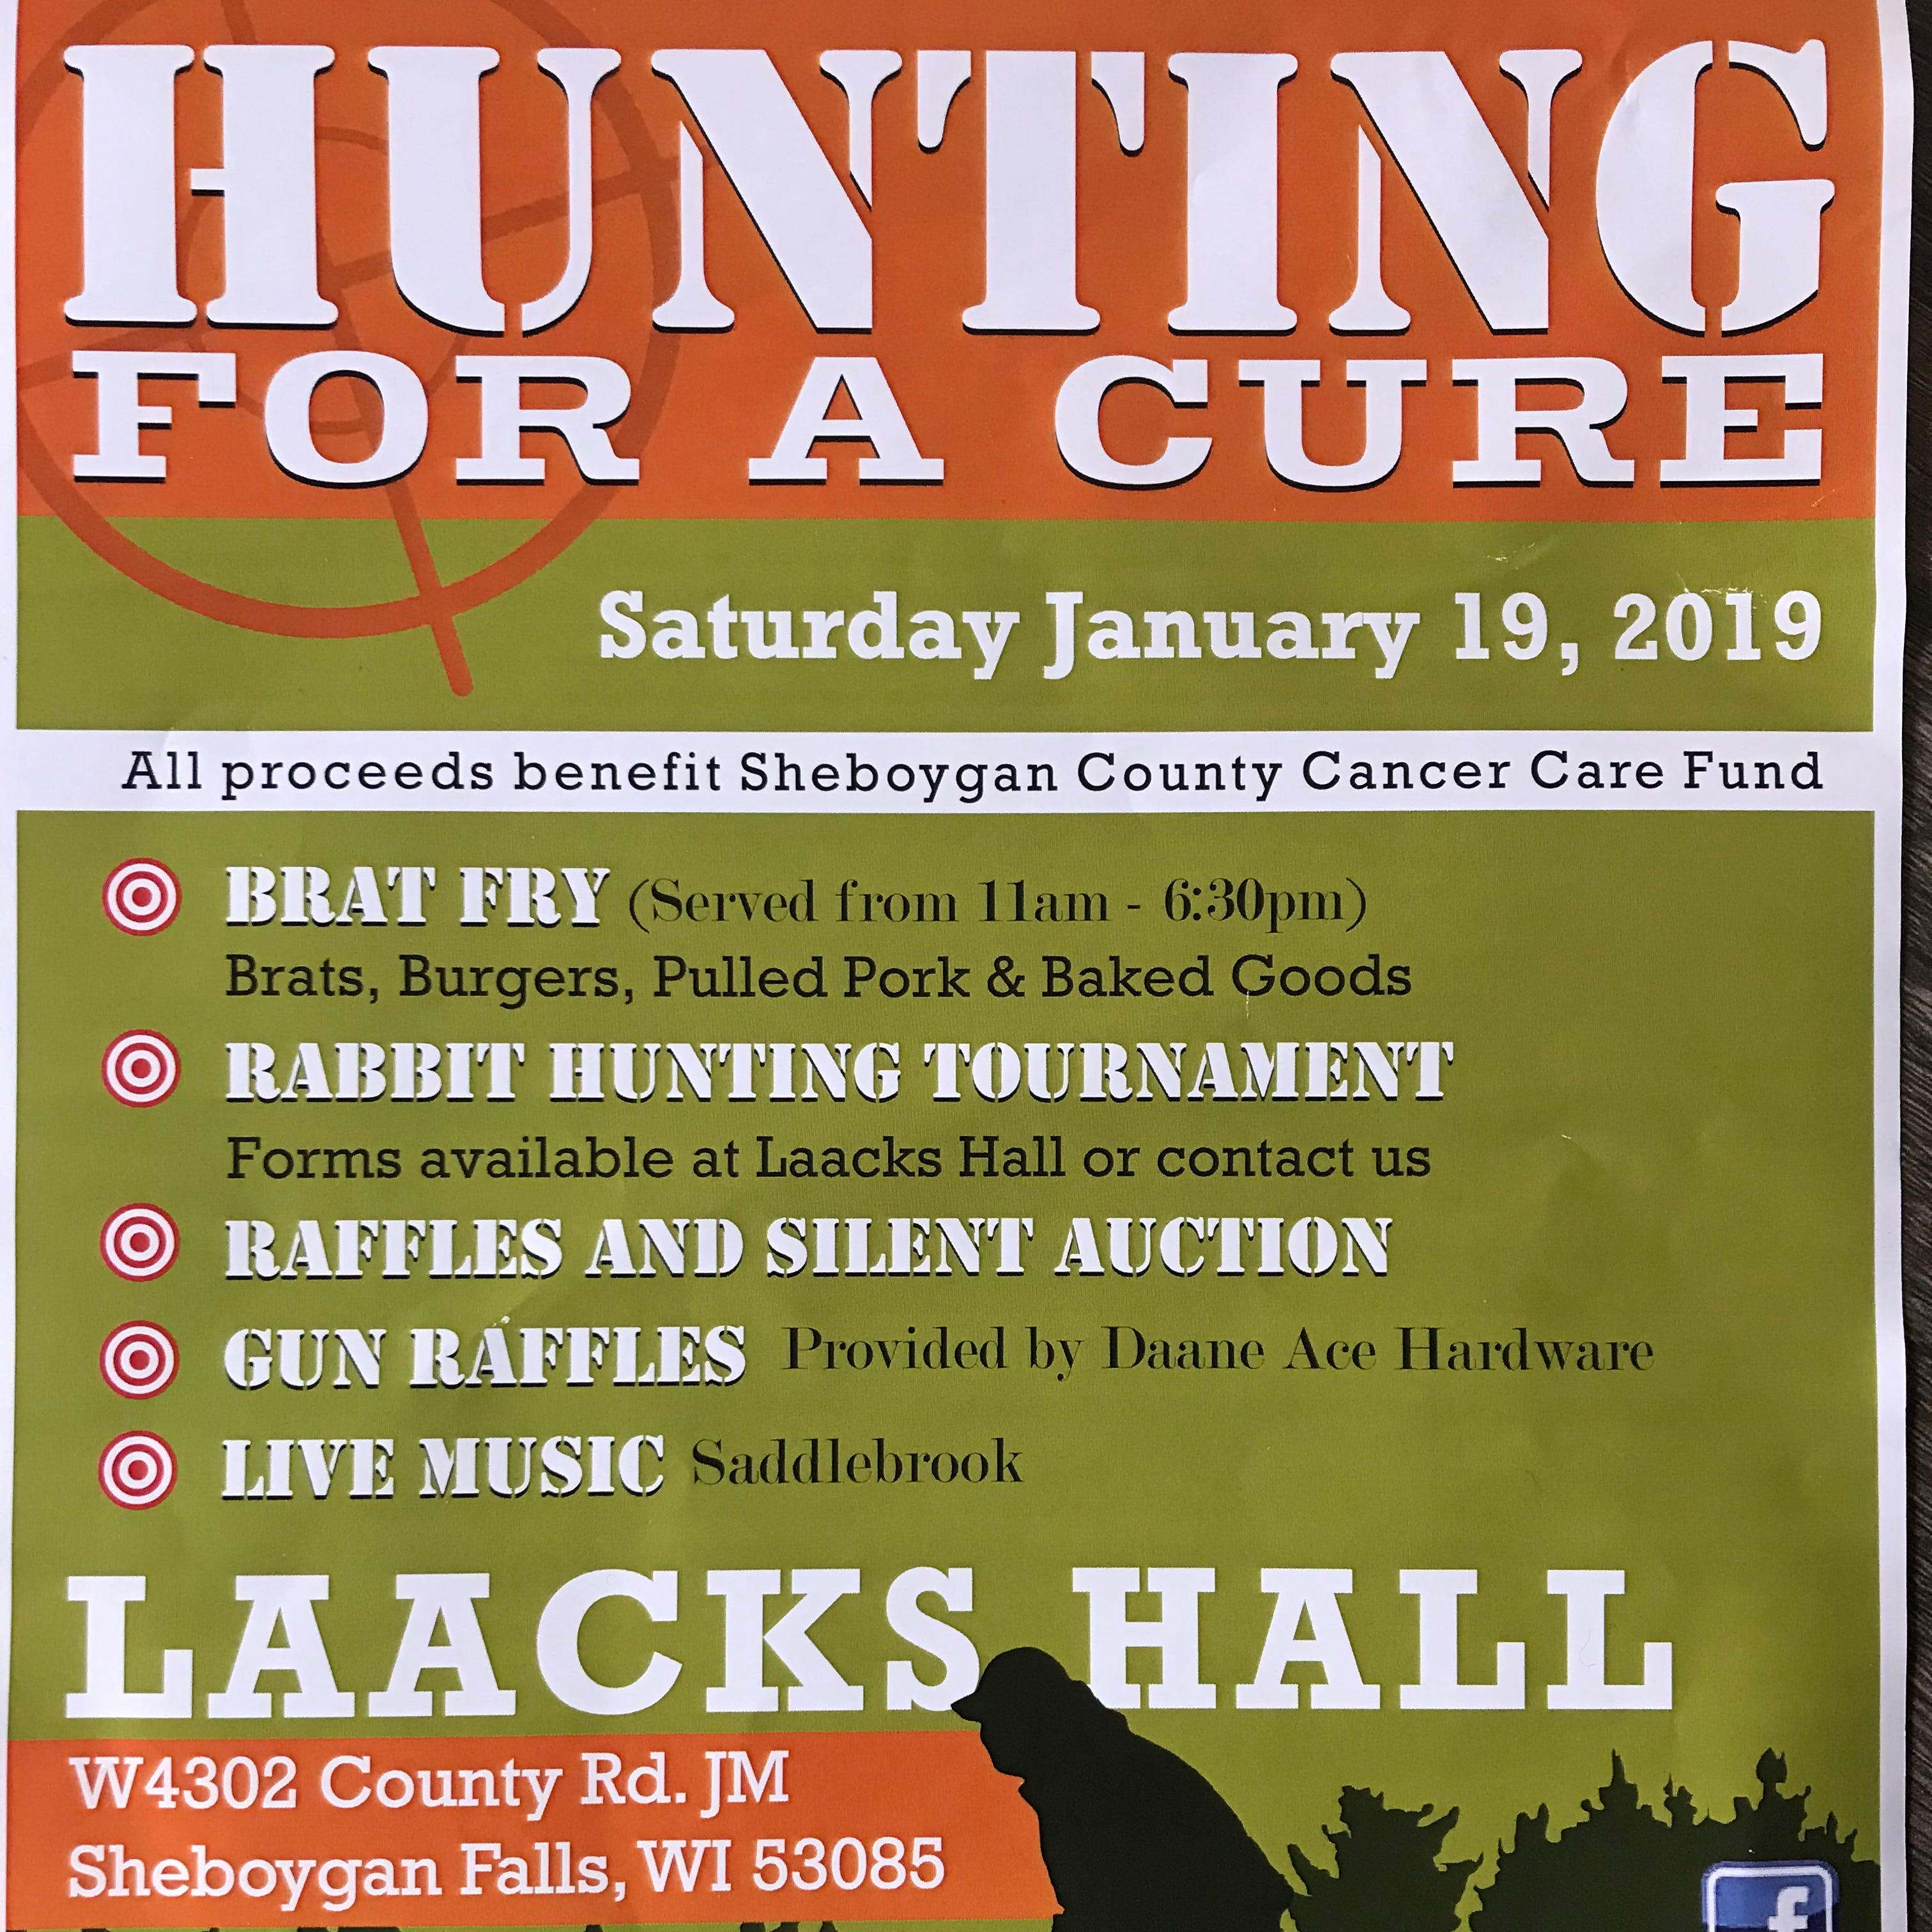 Hunting for a Cure cancer fundraiser in Sheboygan within rules but facing backlash